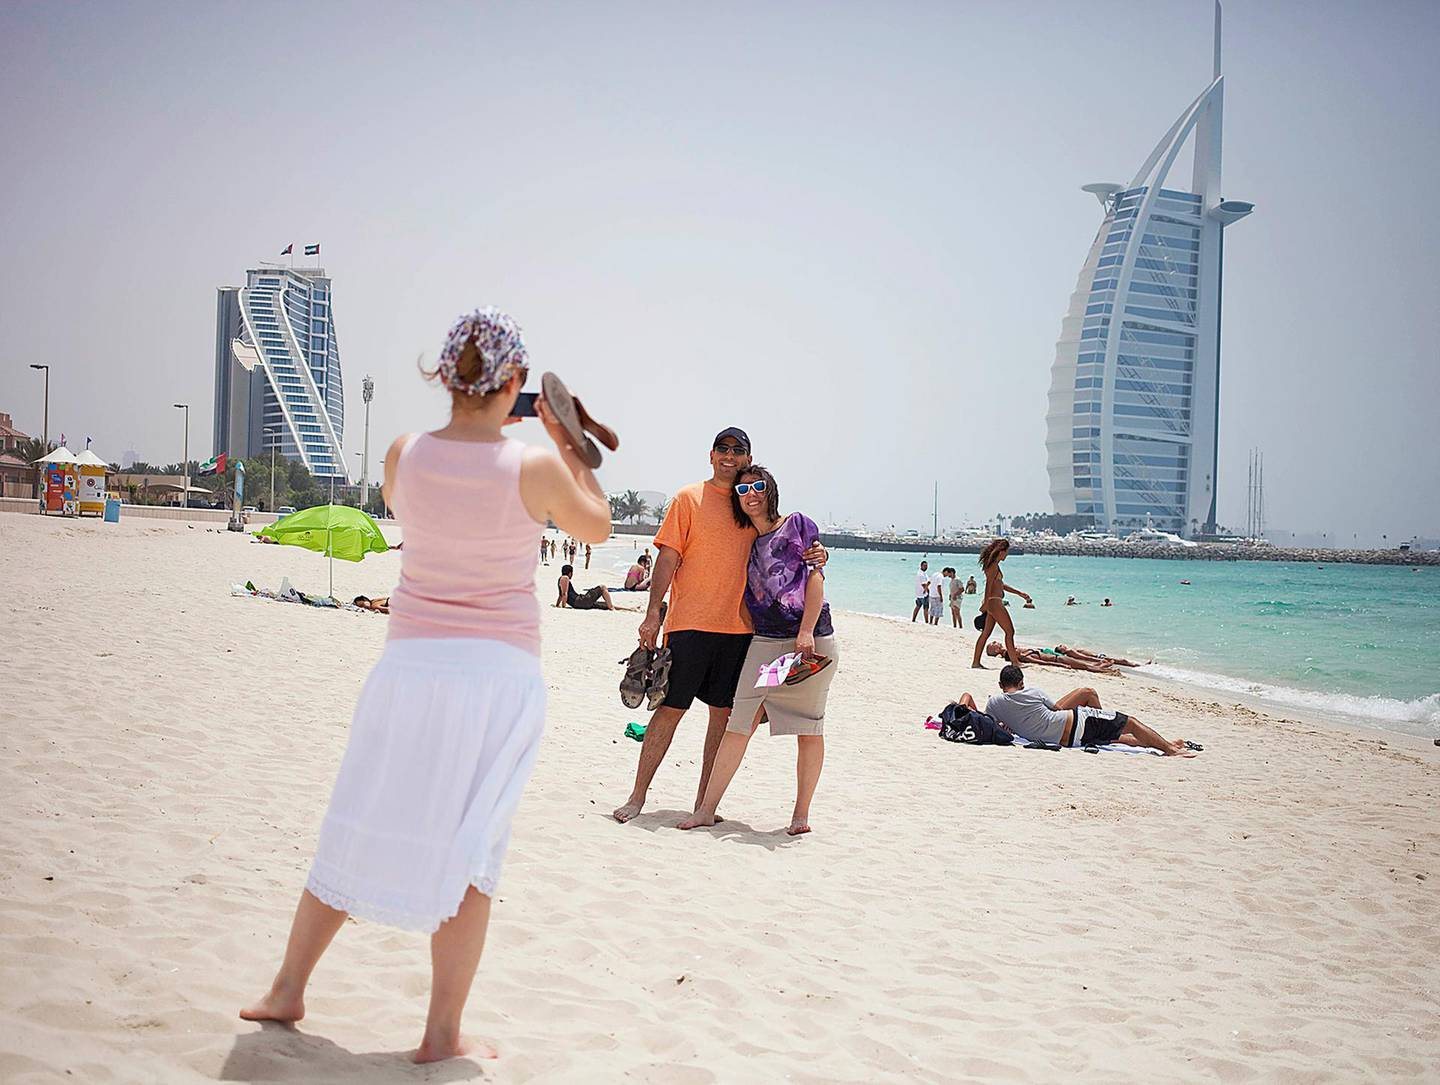 Dubai, United Arab Emirates - May 23 2013 - Tourists from Turkey take pictures at the public beach by Burj Al Arab after being dropped off there by a tour bus. STOCK. (Razan Alzayani / The National)